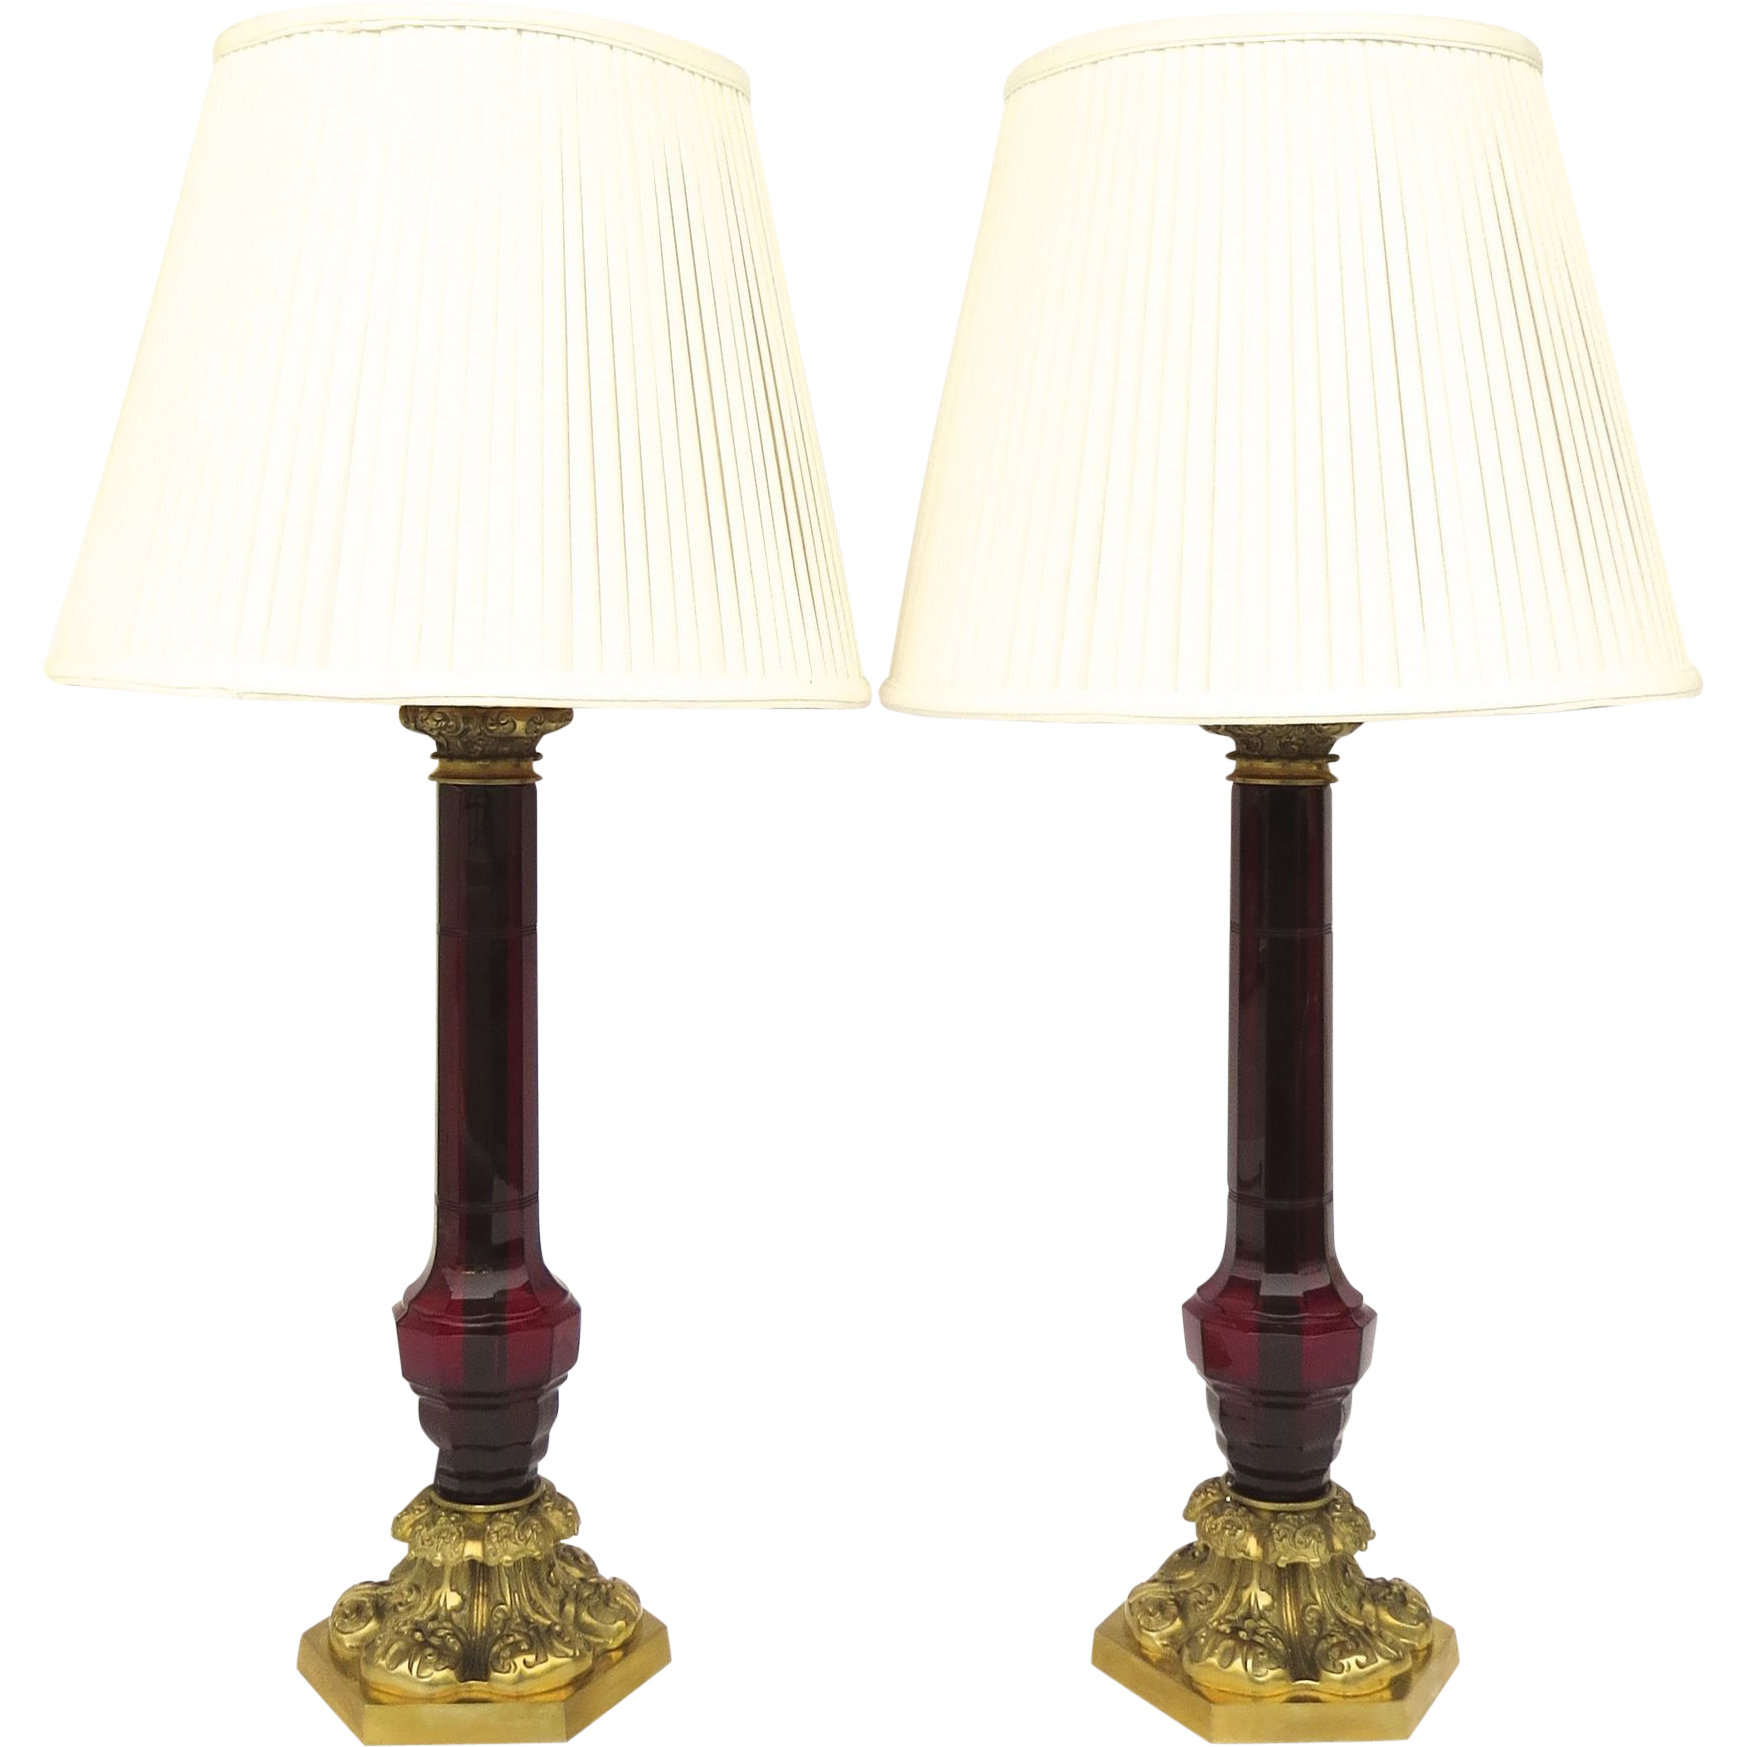 Table lamp vintage style - Pair Of Vintage William Iv Style Glass Column Cranberry Ruby Red Table Lamps By Vaughan Designs London